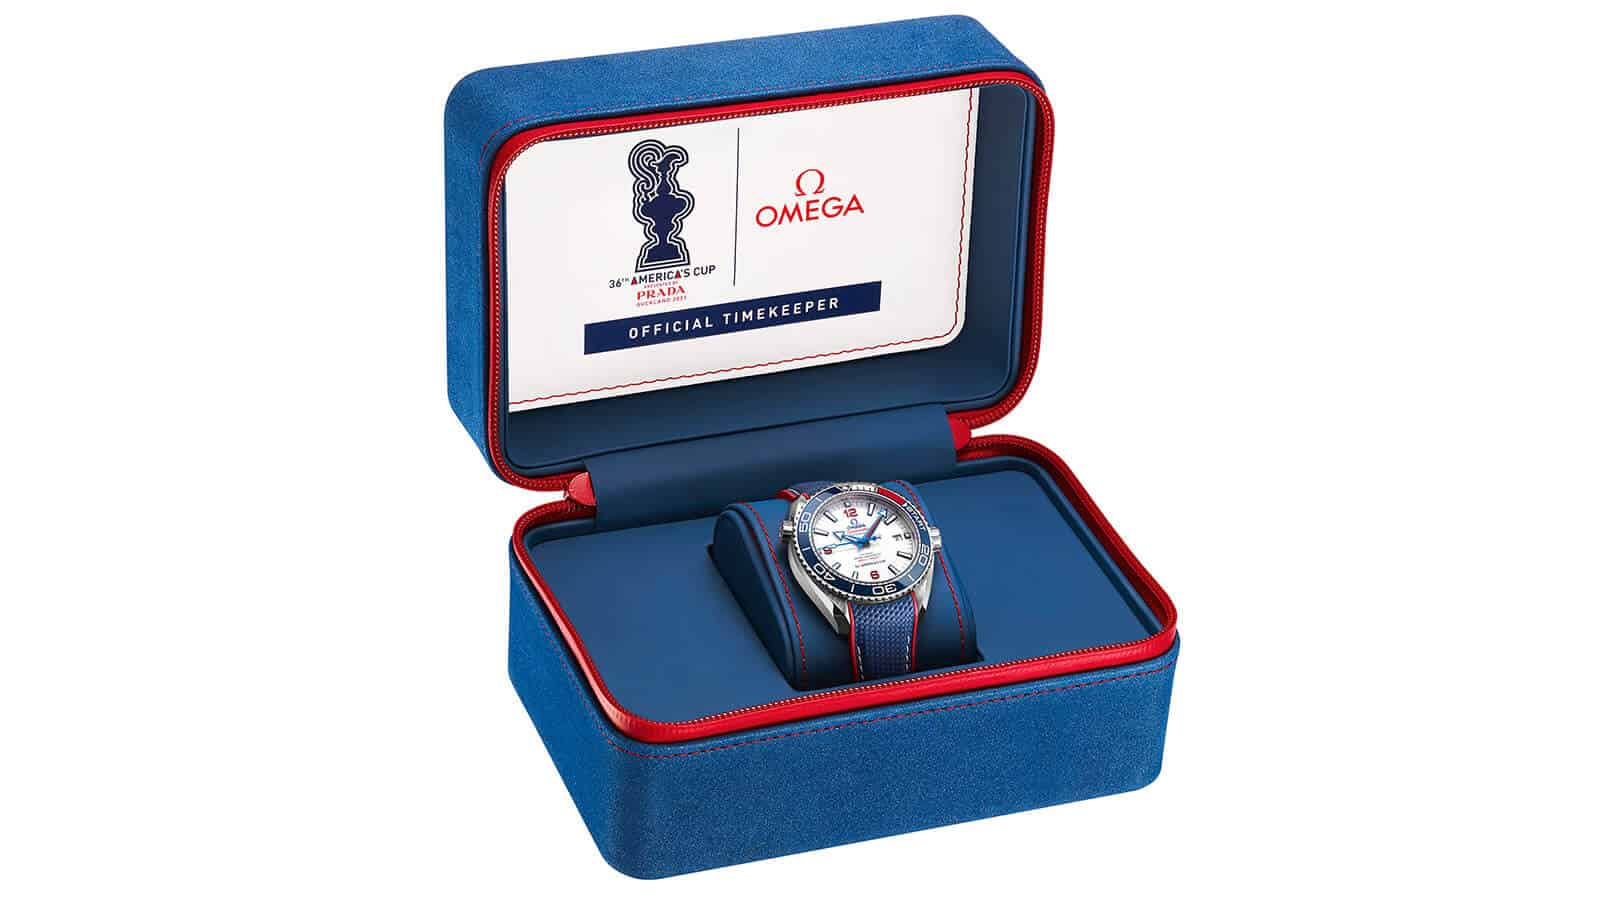 OMEGA Seamaster Planet Ocean 36th-America´s-Cup Limited Edition in Präsentationsbox